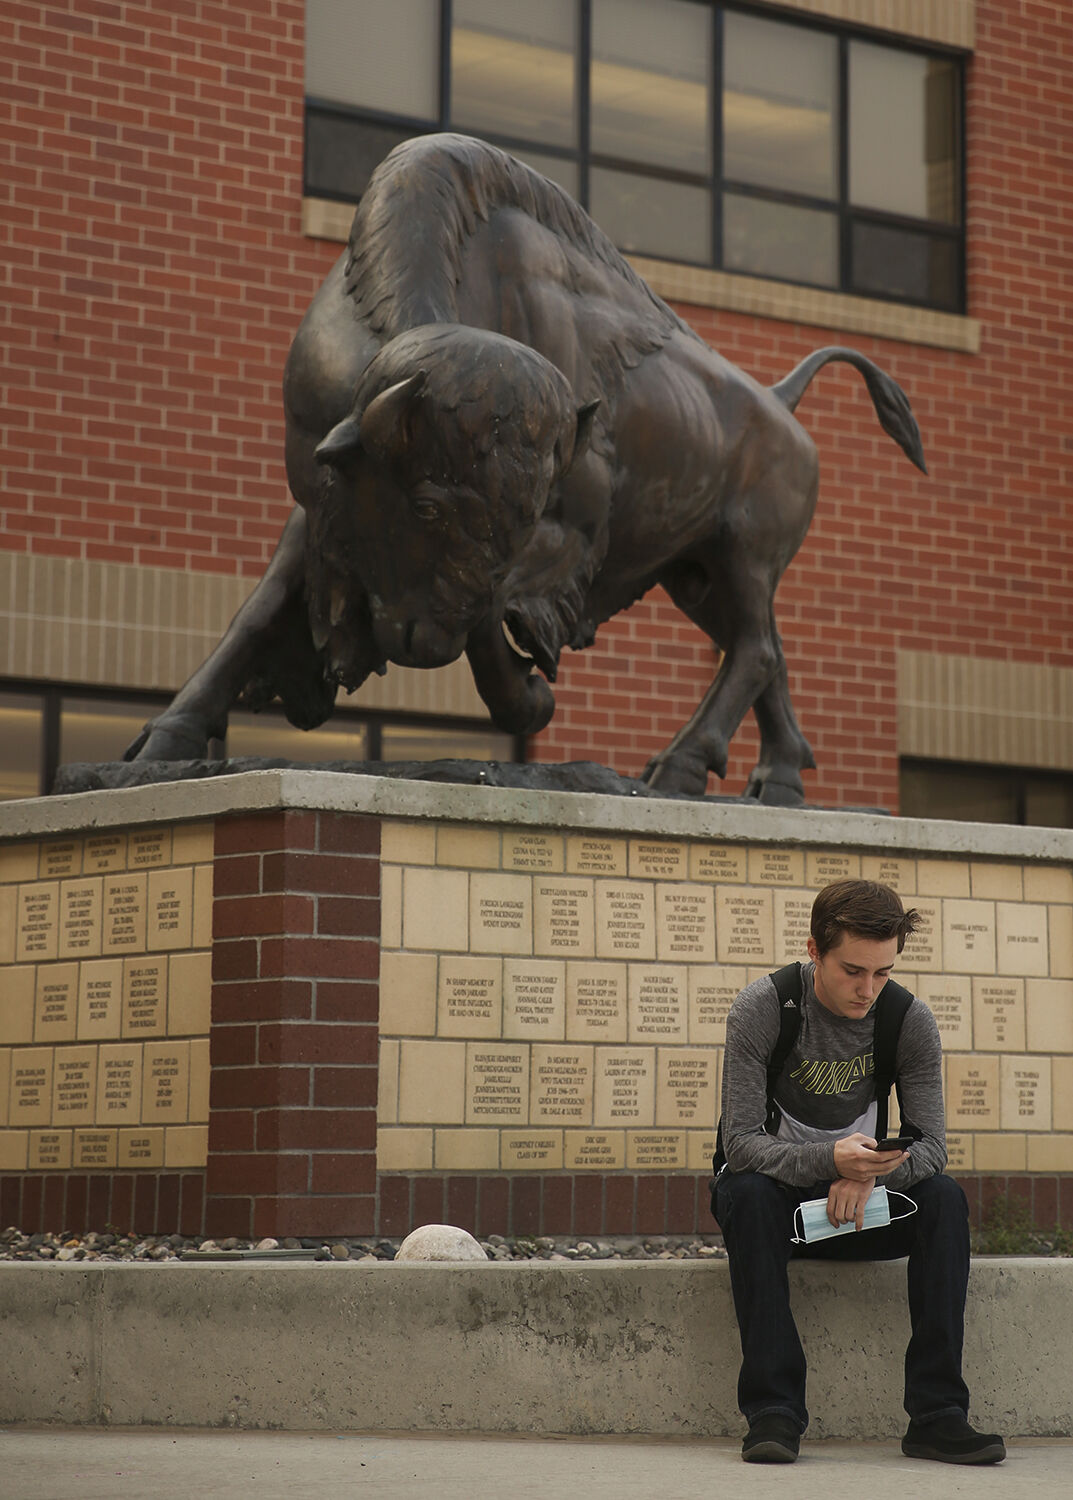 Senior Aaron Dyess sits next to the buffalo statue outside the high school